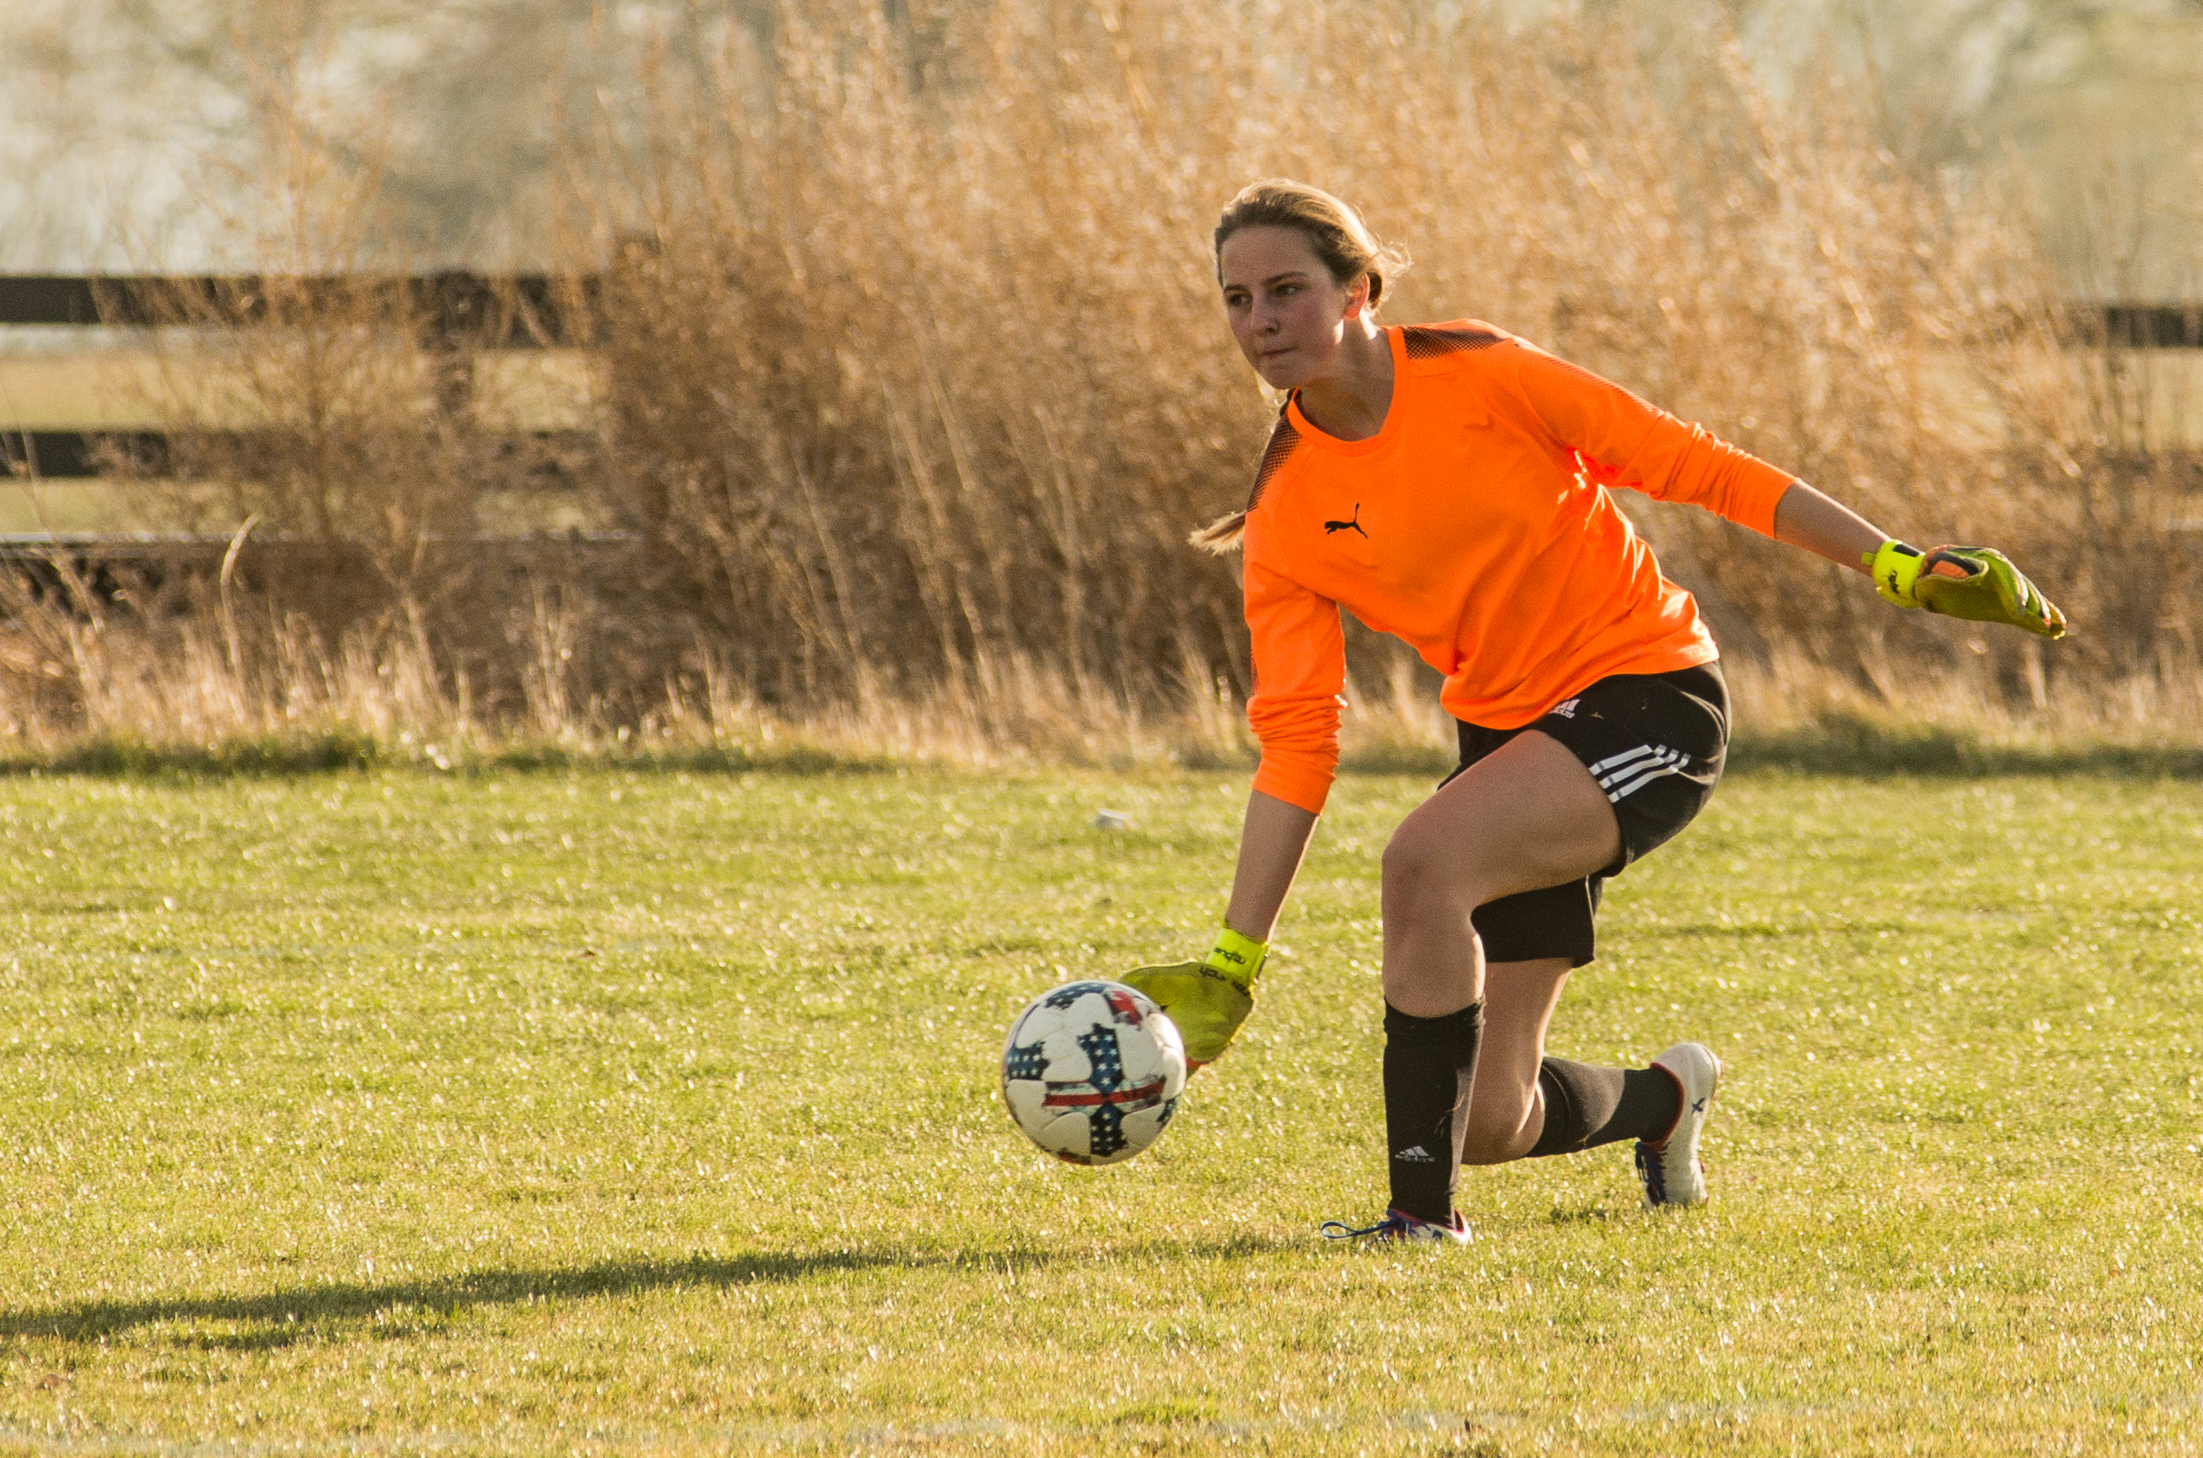 20171103-United SC vs Chaffee County-PMG_9281.jpg